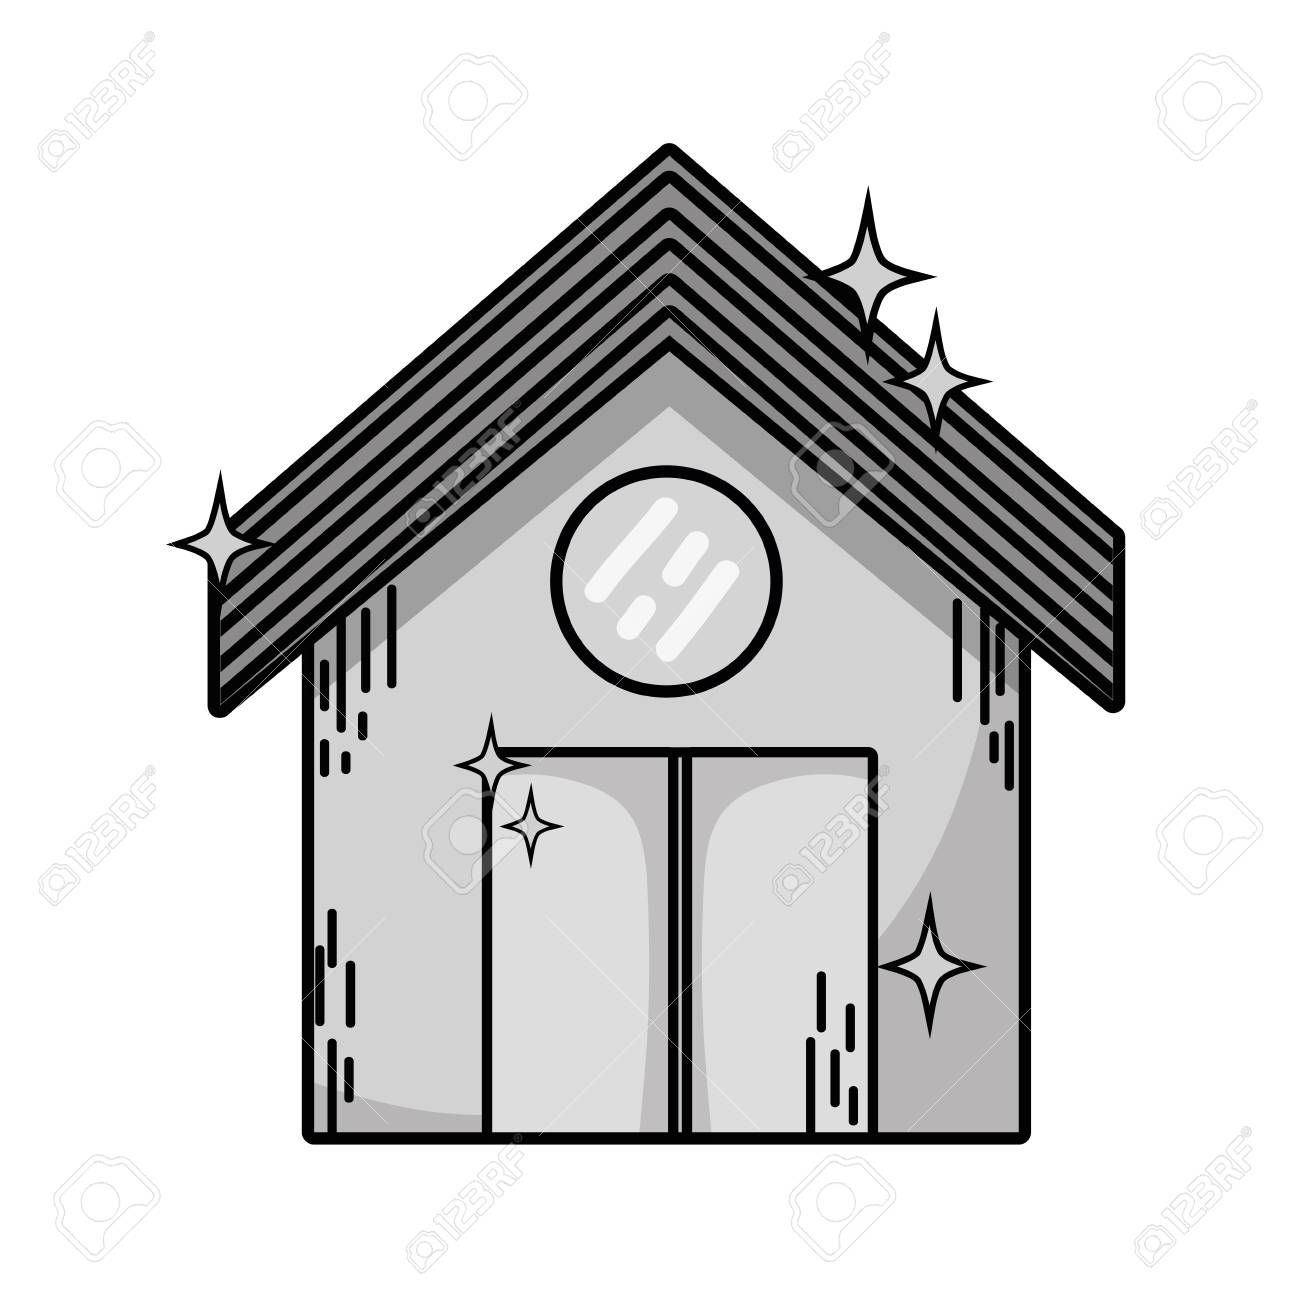 Grayscale Clean House With Roof And Door Design Illustration Ad House Clean Grayscale Roof Illustration Door Design Grayscale Clean House